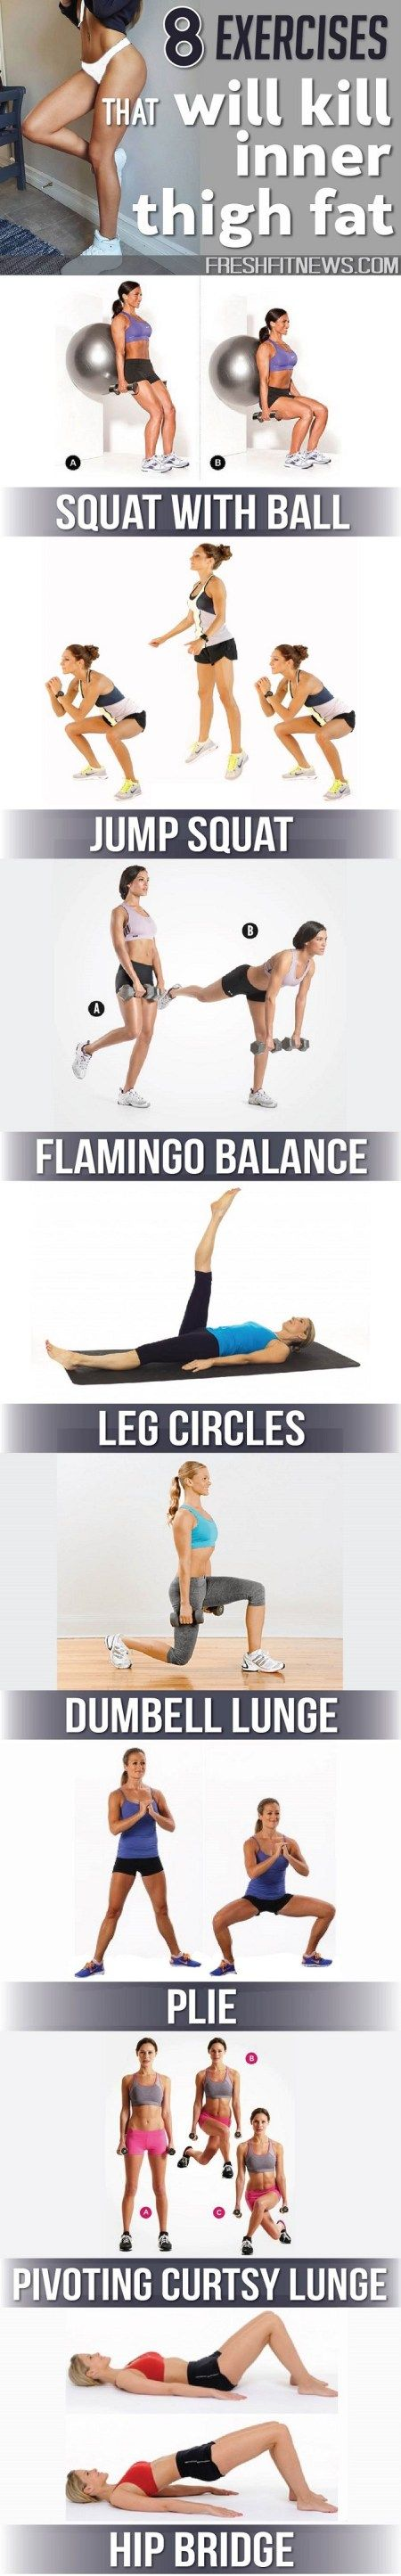 8 Exercises That Will Kill Inner Thigh Fat 8 Exercises That Will Kill Inner Thigh Fat